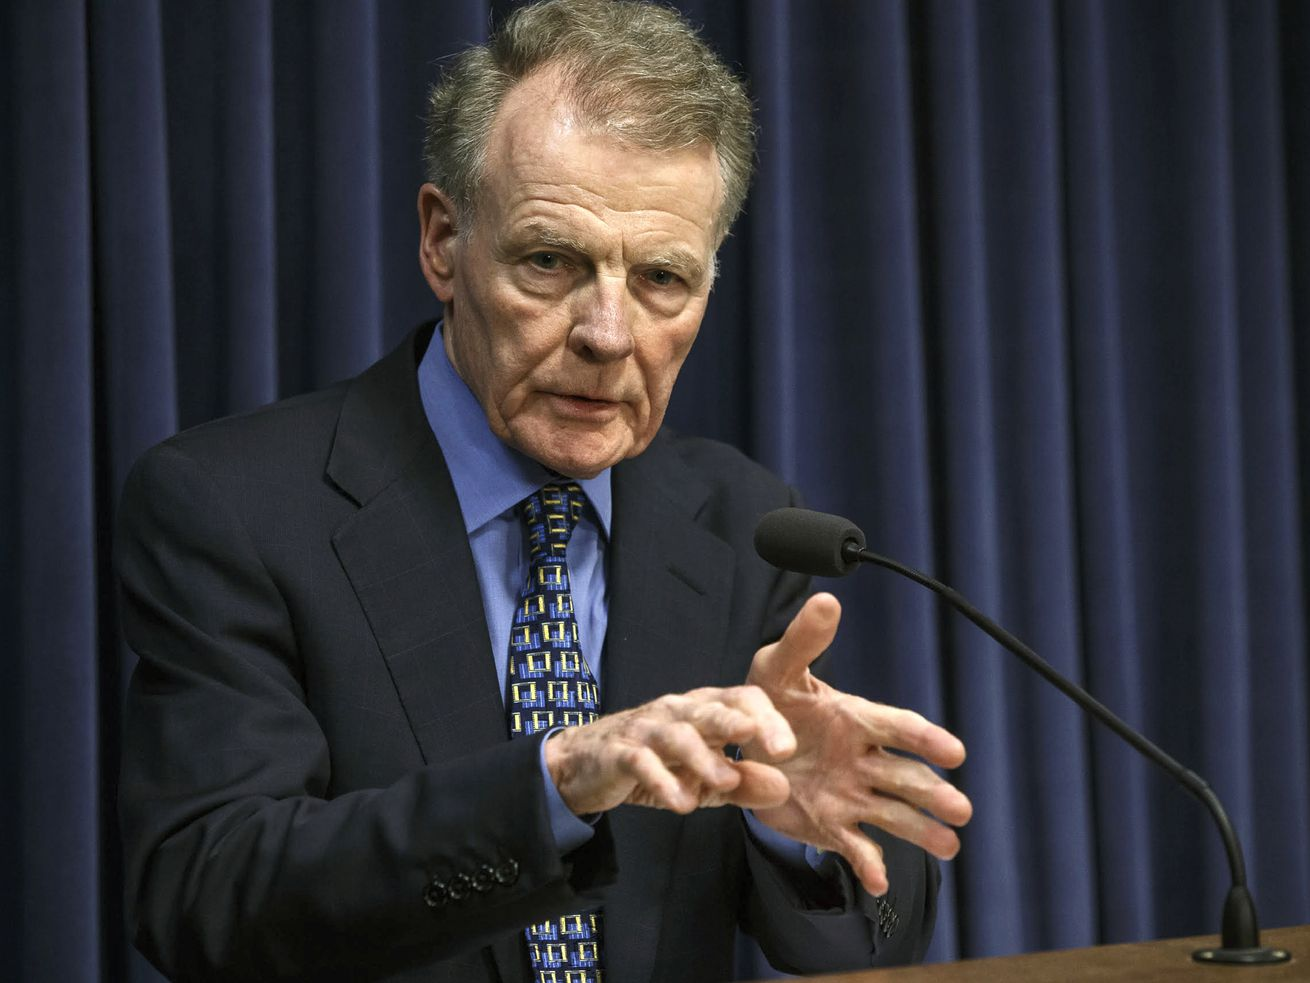 If witnesses can't talk, is GOP investigating Mike Madigan or putting on a show trial?